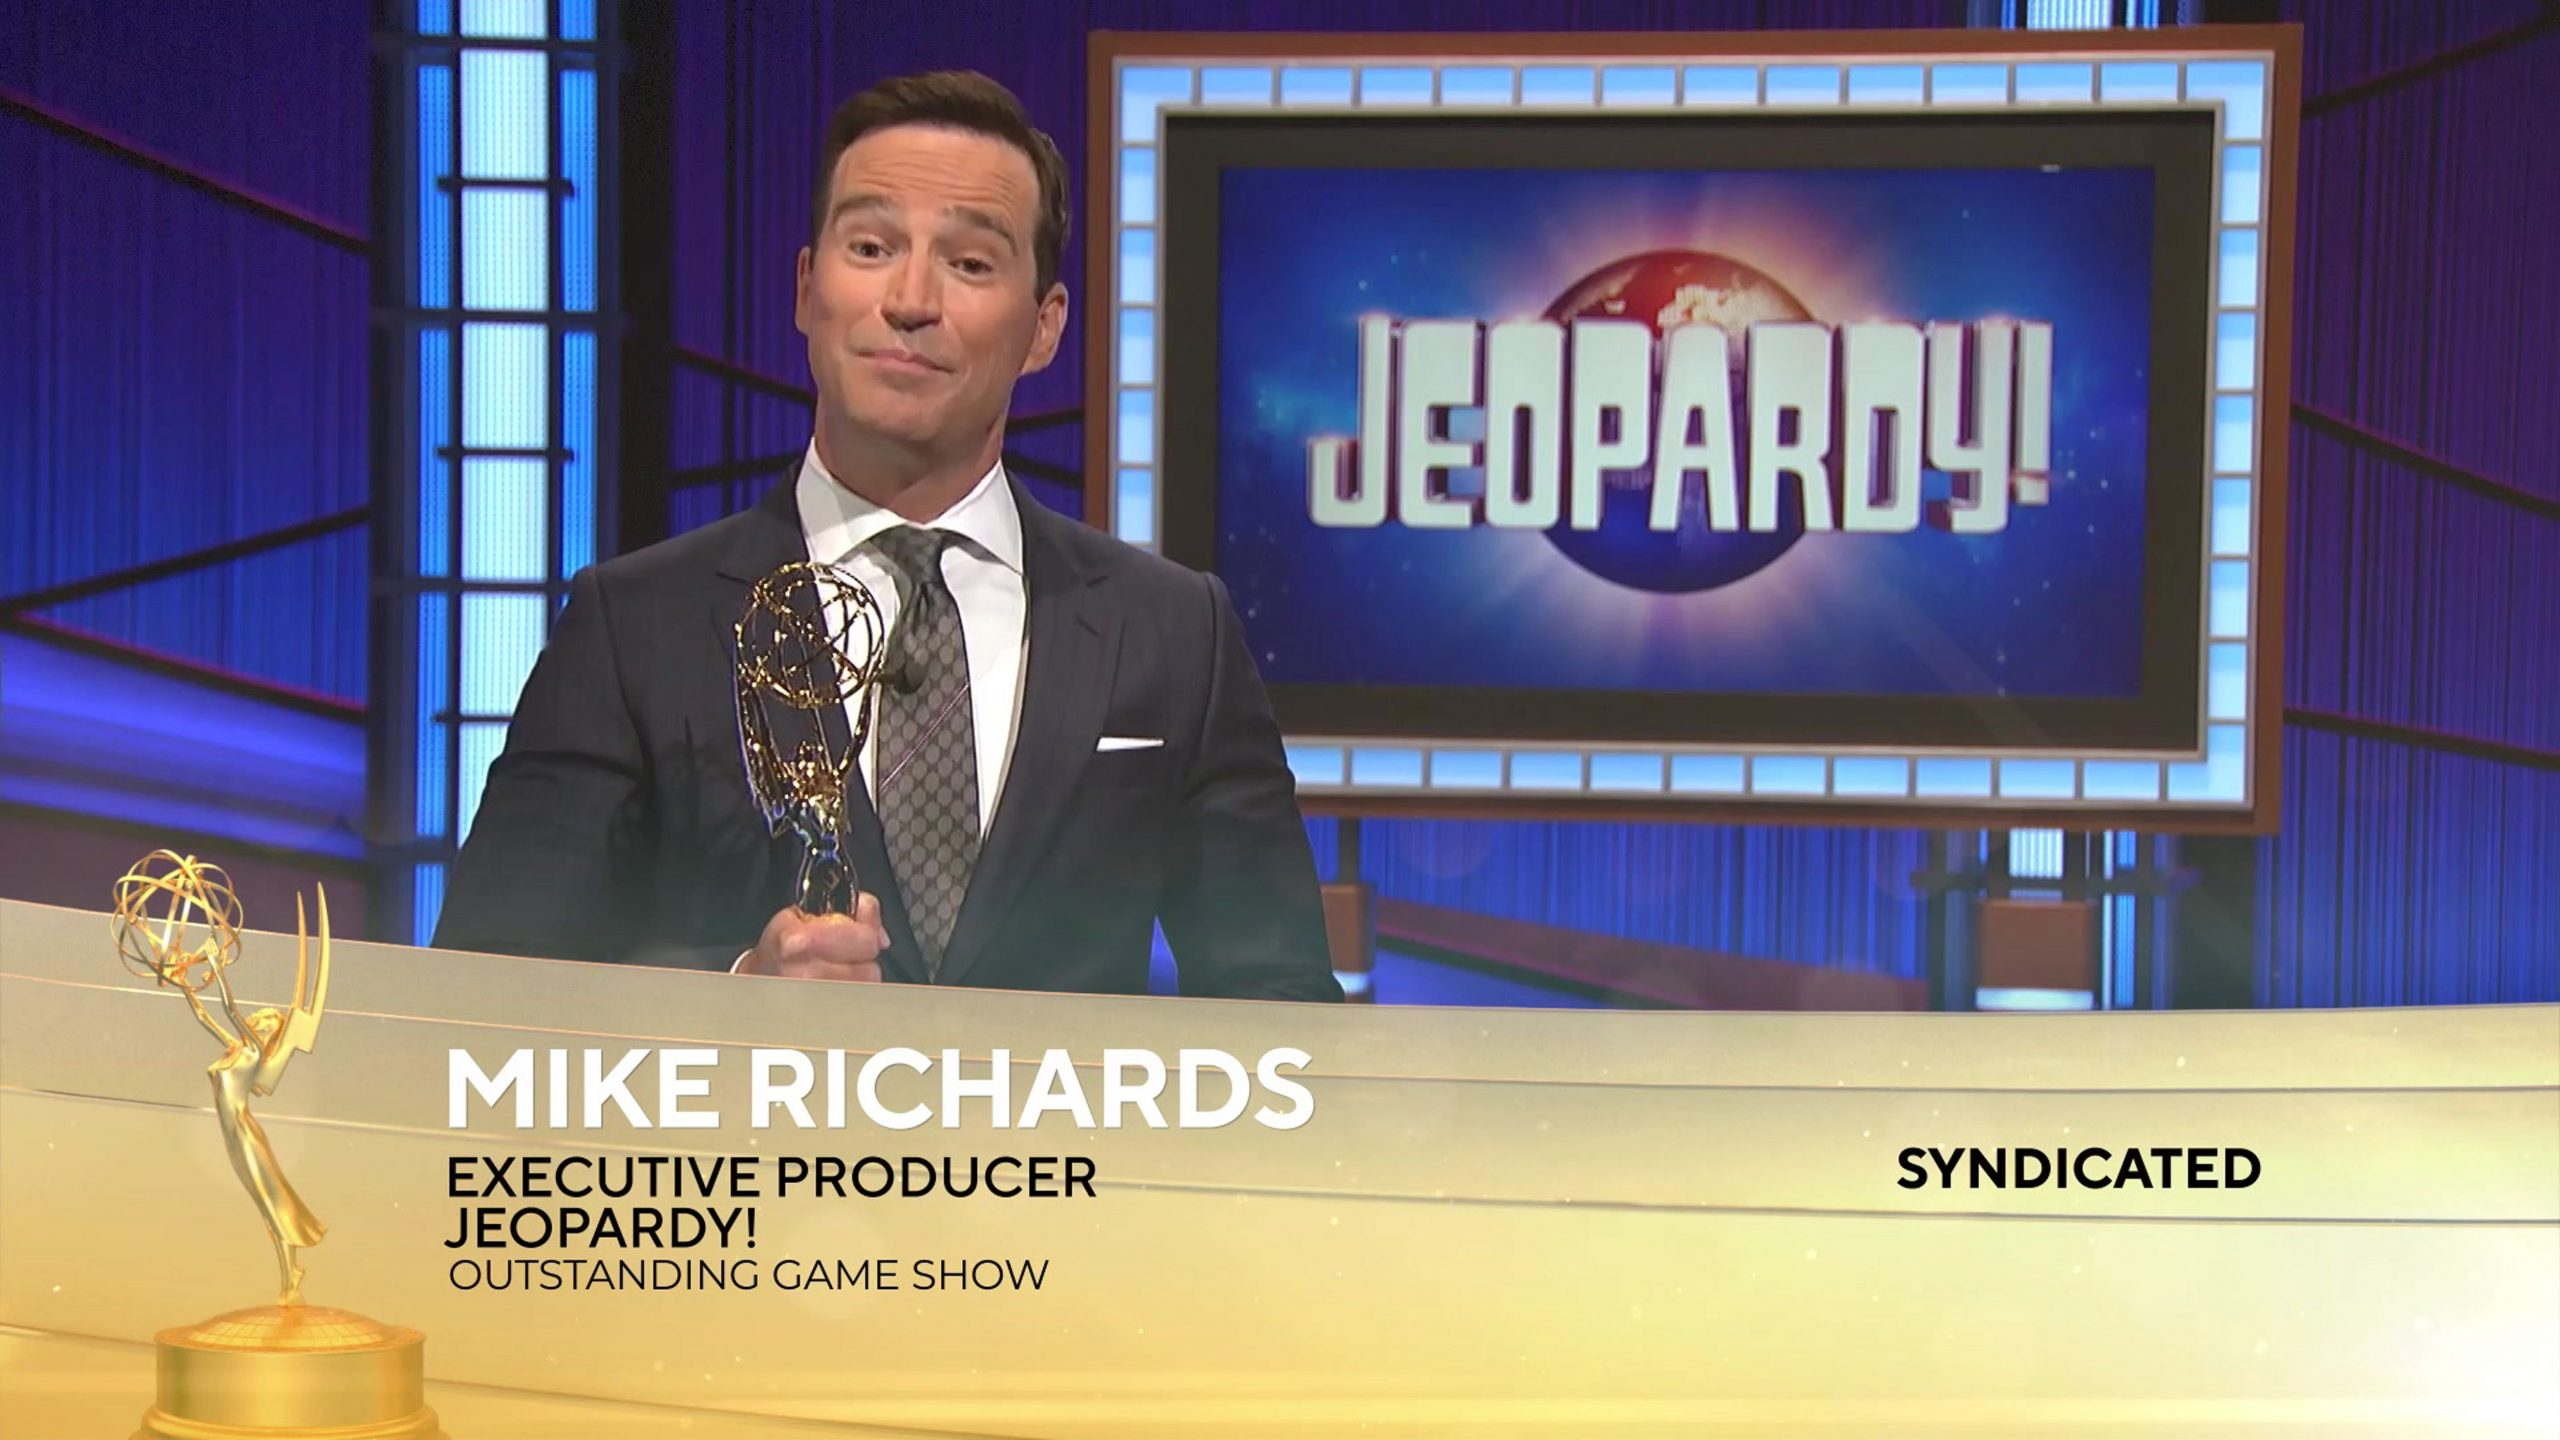 'Jeopardy!' executive producer Mike Richards accepts a 2021 Emmy for the game show.